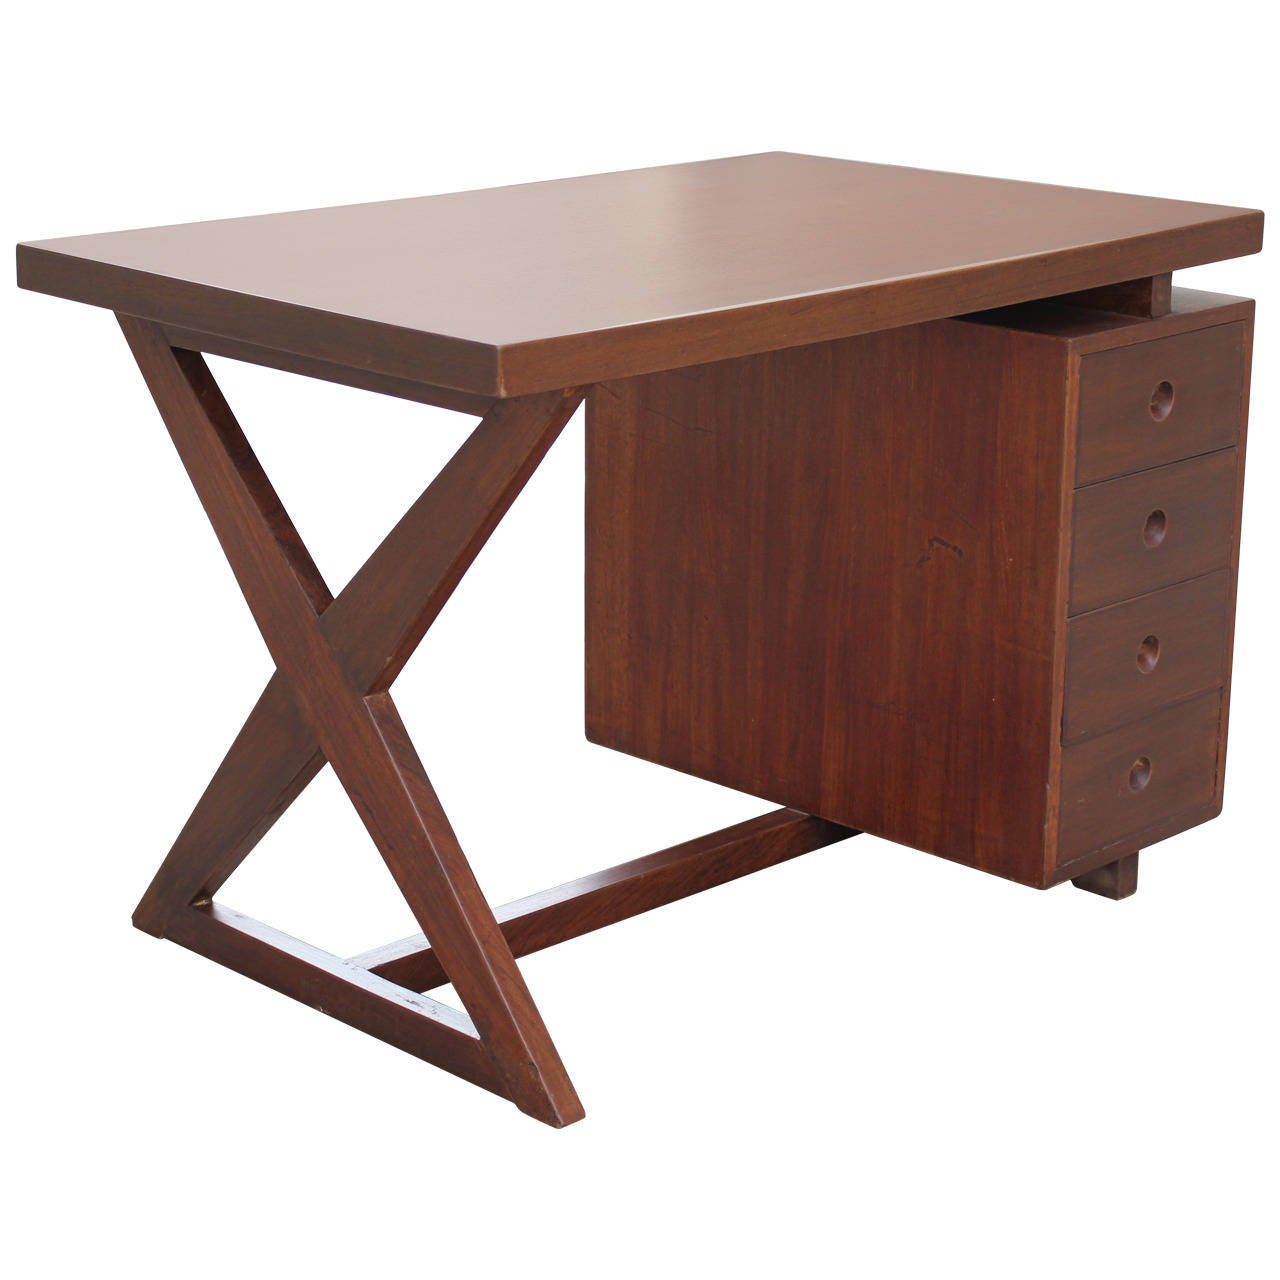 Pierre Jeanneret Bureau of Administration Desk For Sale